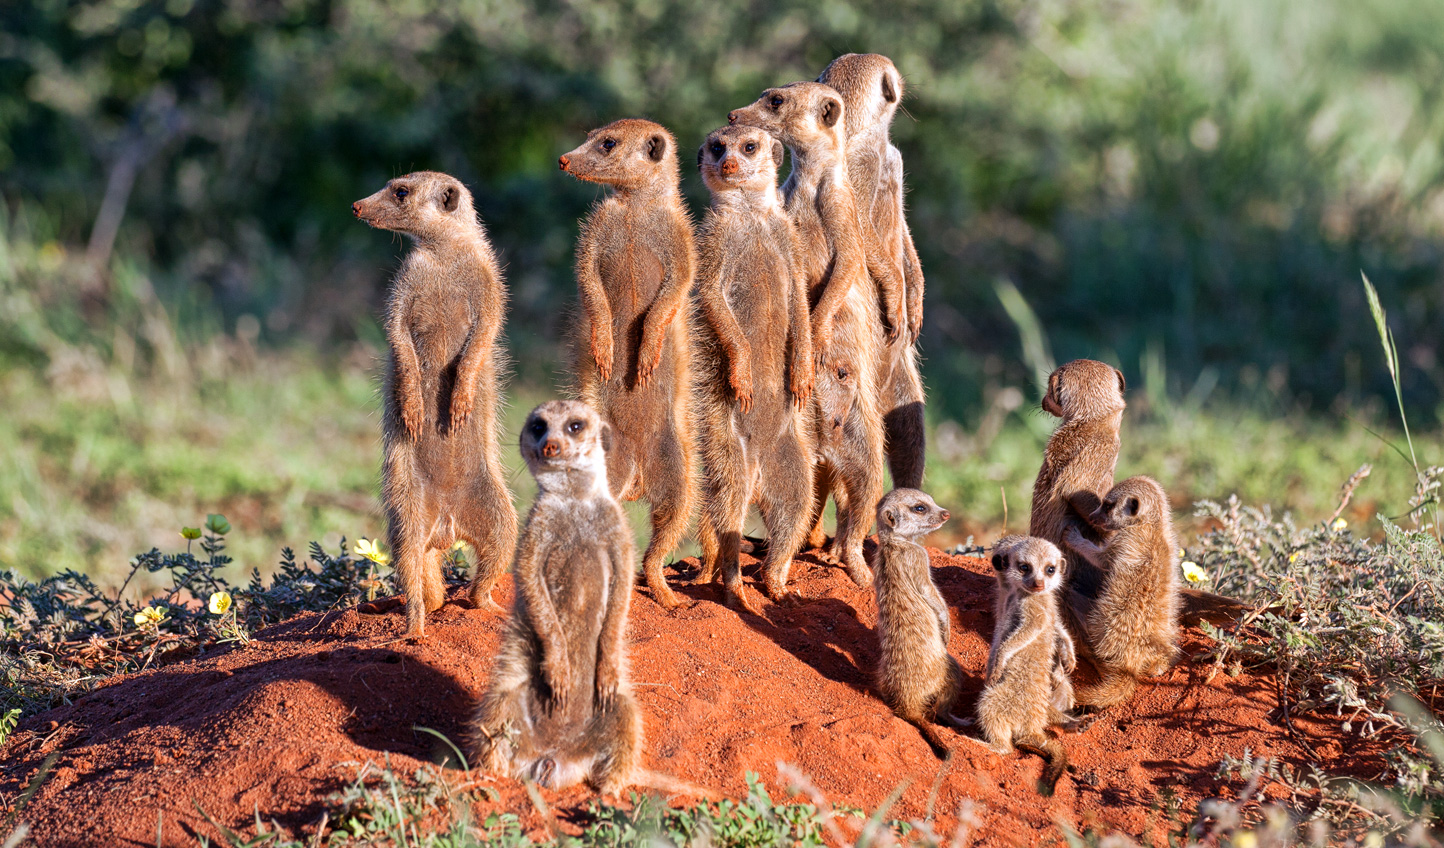 Get to know the local meerkat colony